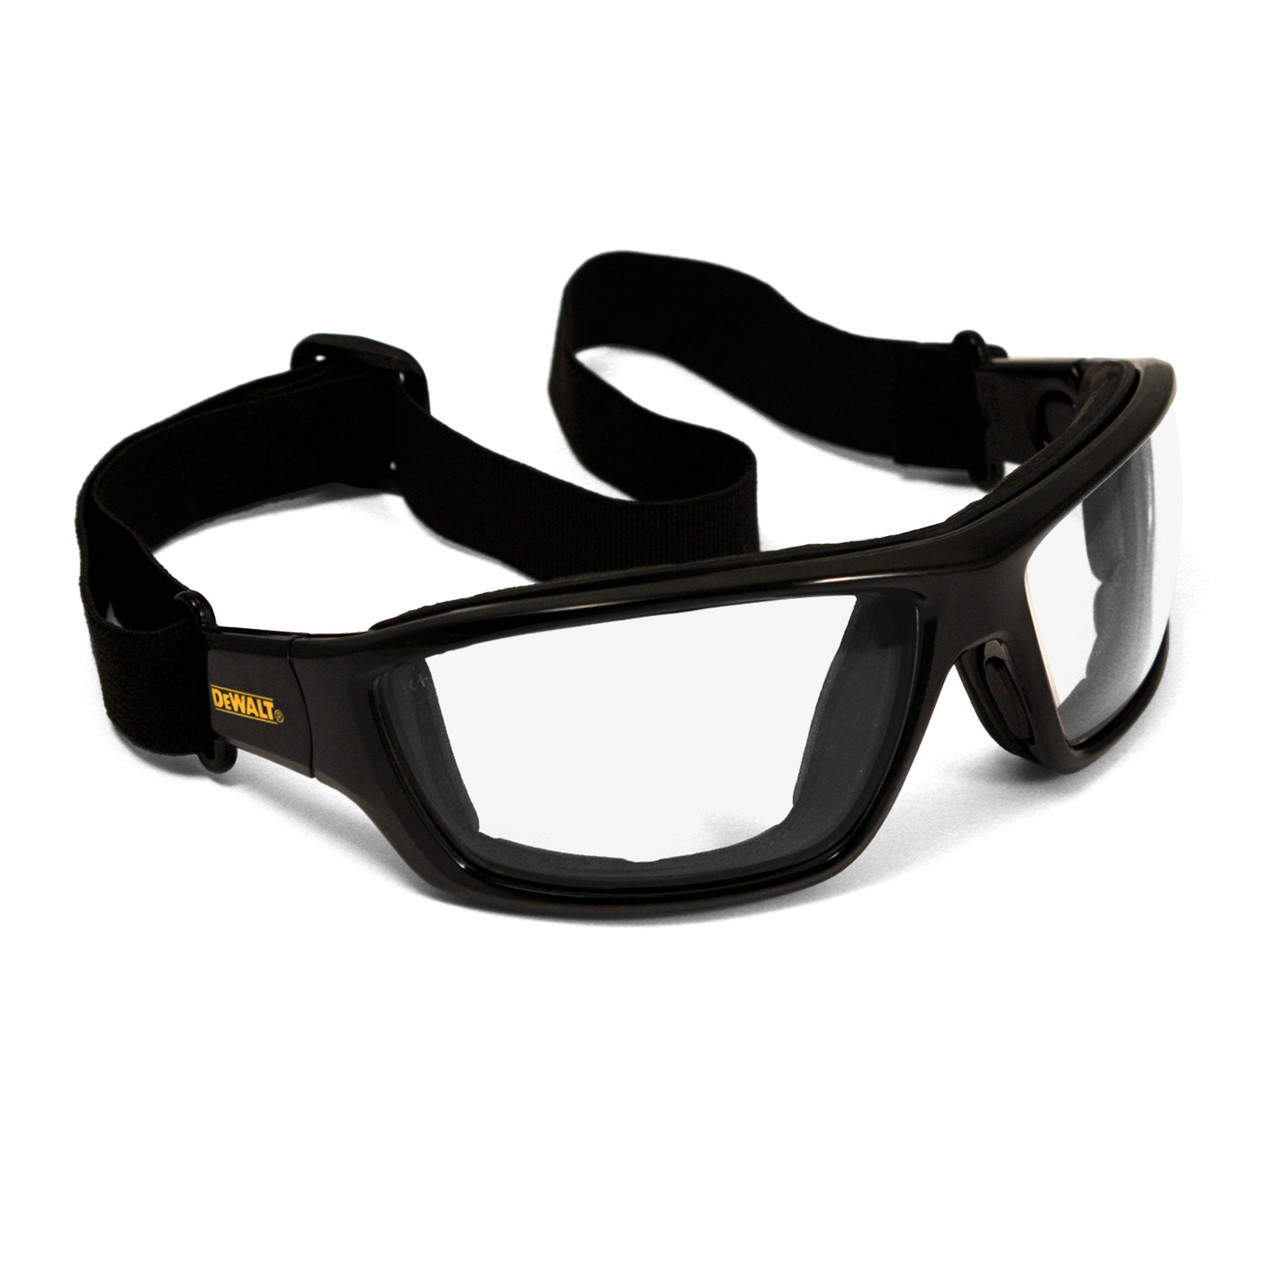 fbe11a5027e DeWalt DPG83-11 Concealer Safety Glass Goggle Clear Anti Fog. Price    11.98. Image 1